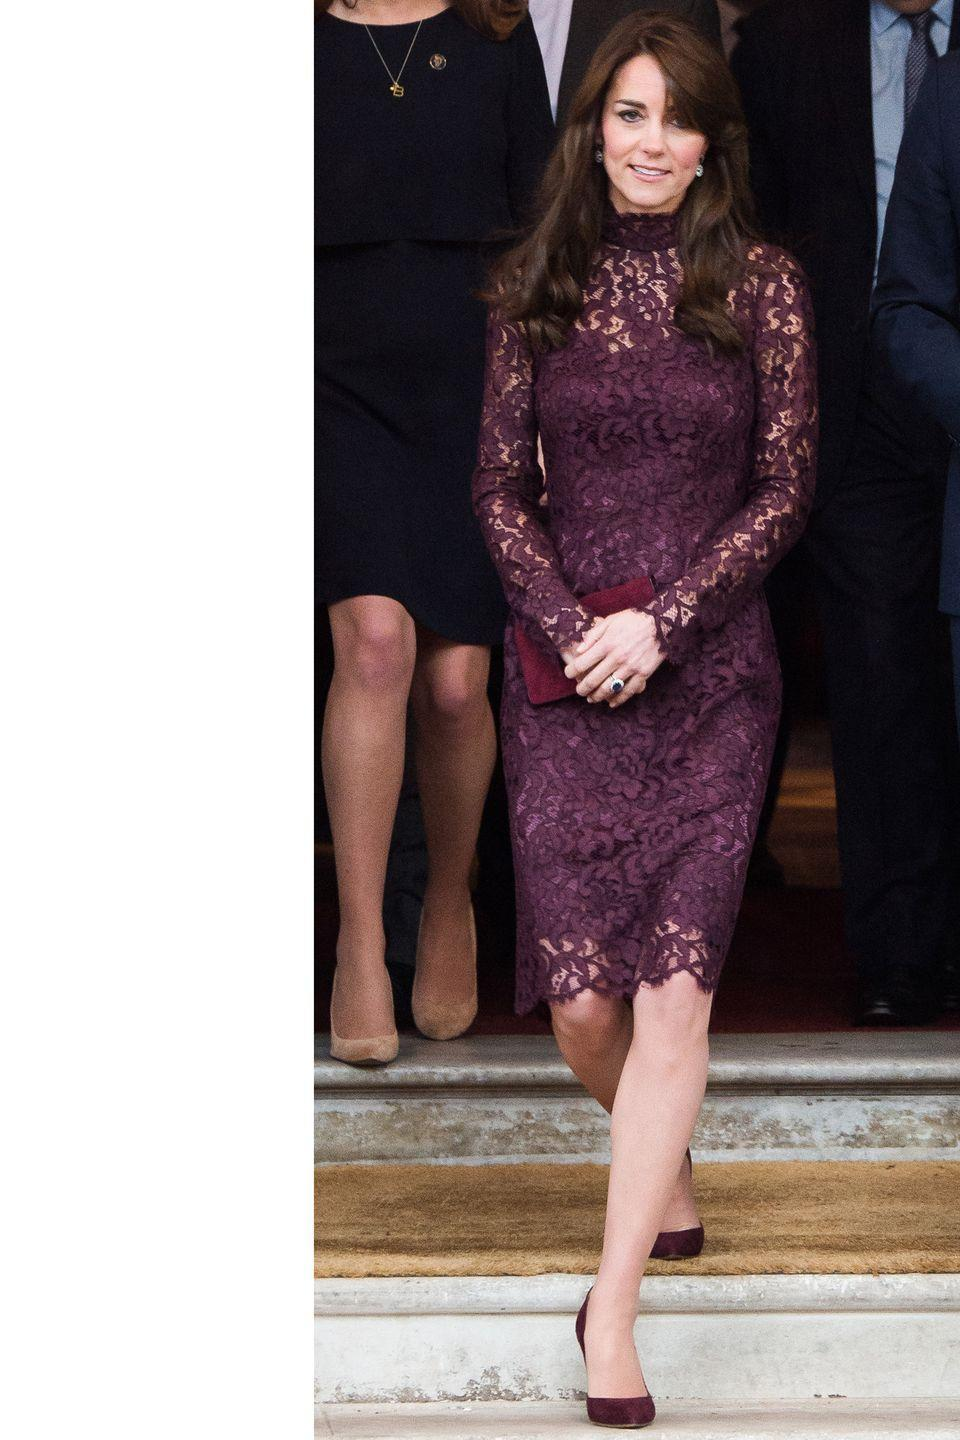 <p>The Duchess steps out in a burgundy lace Dolce & Gabbana dress.</p>